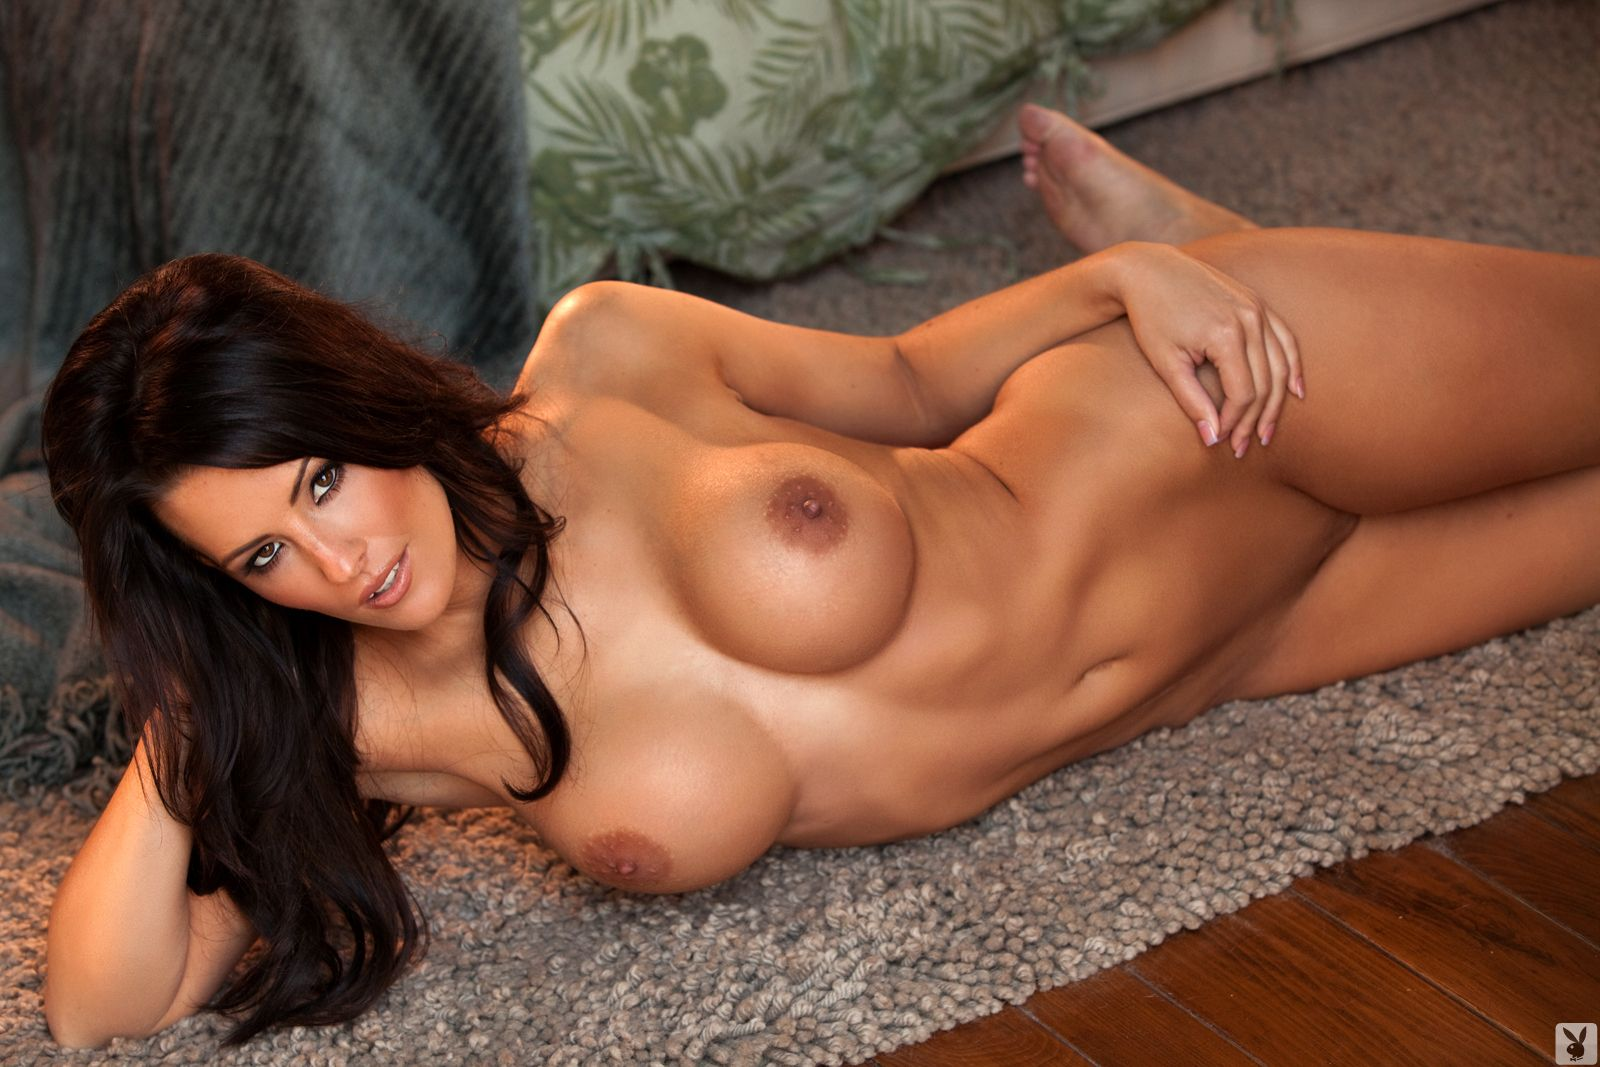 cj miles nude download